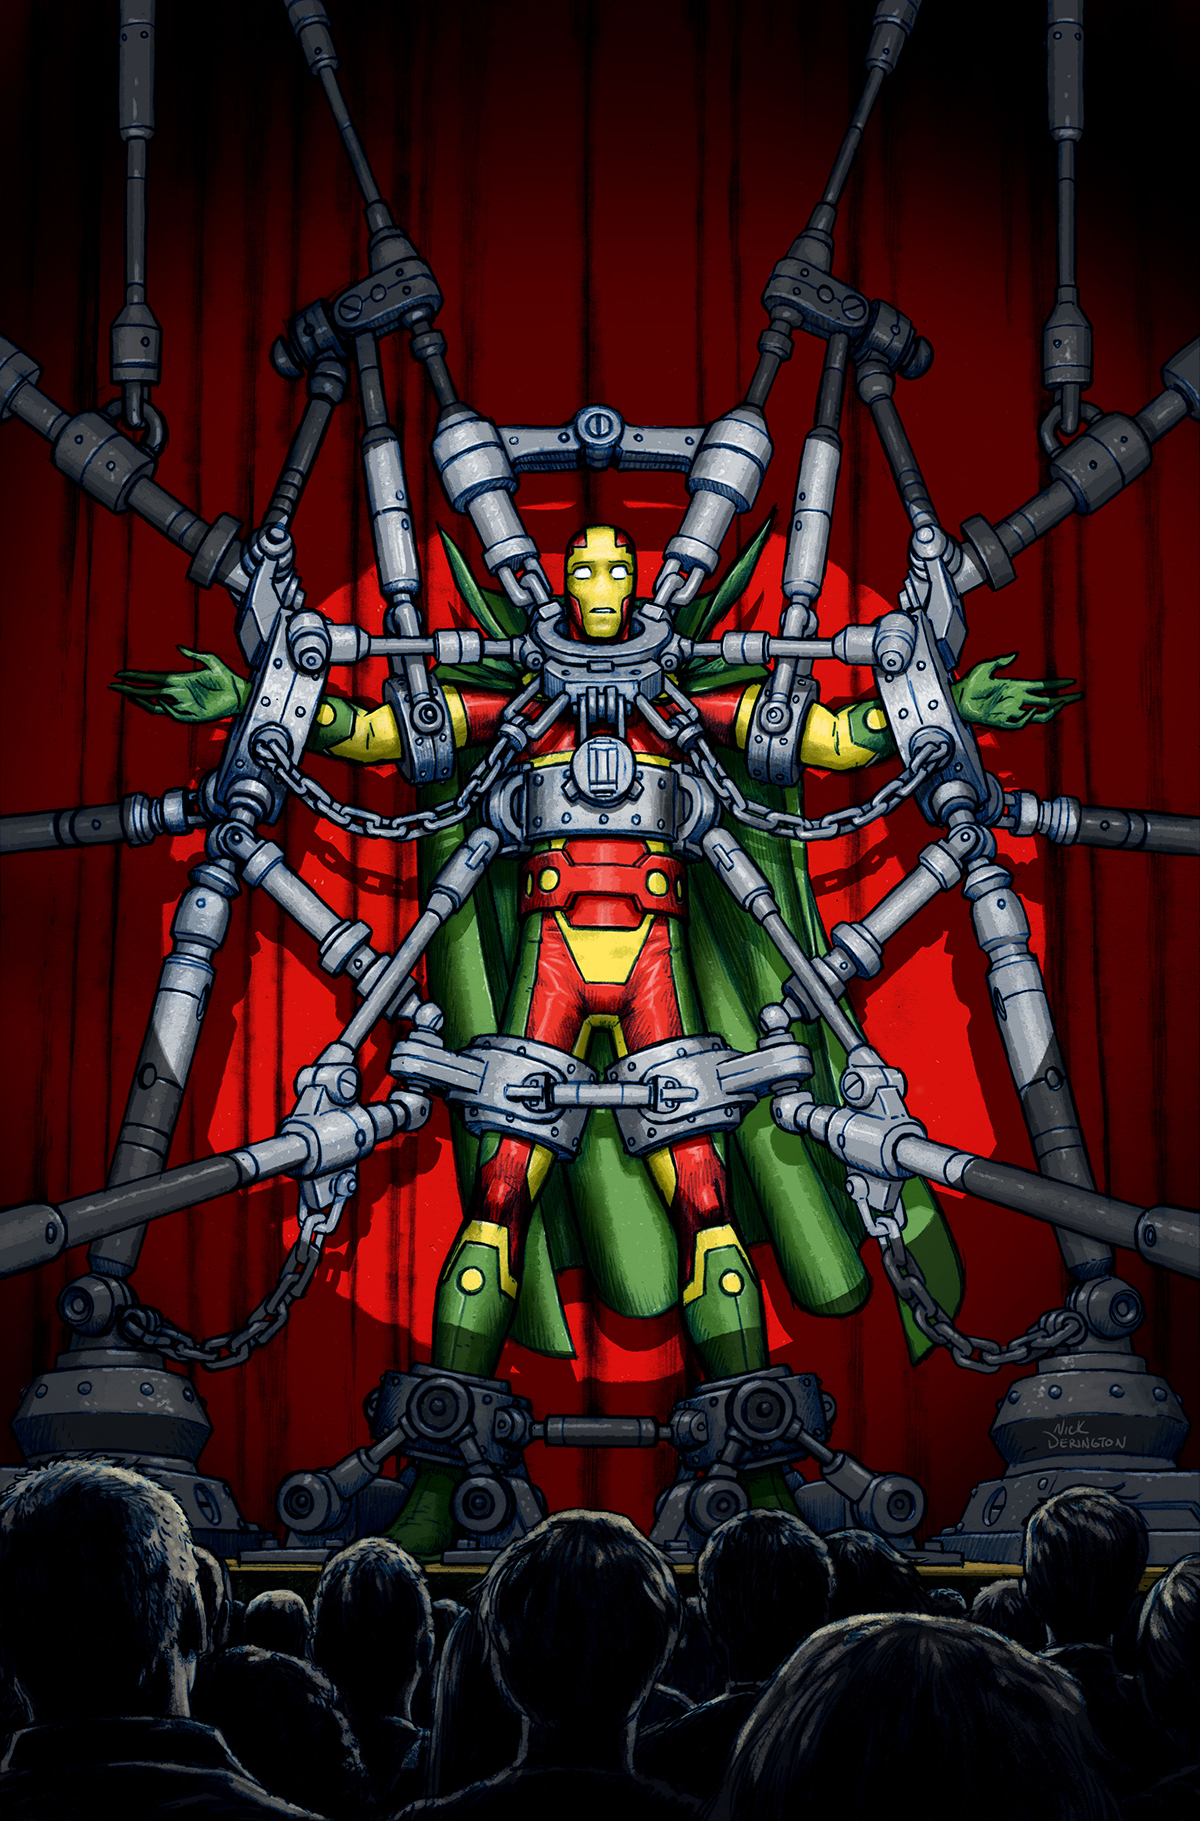 Nick Derington - Mister Miracle #1 cover